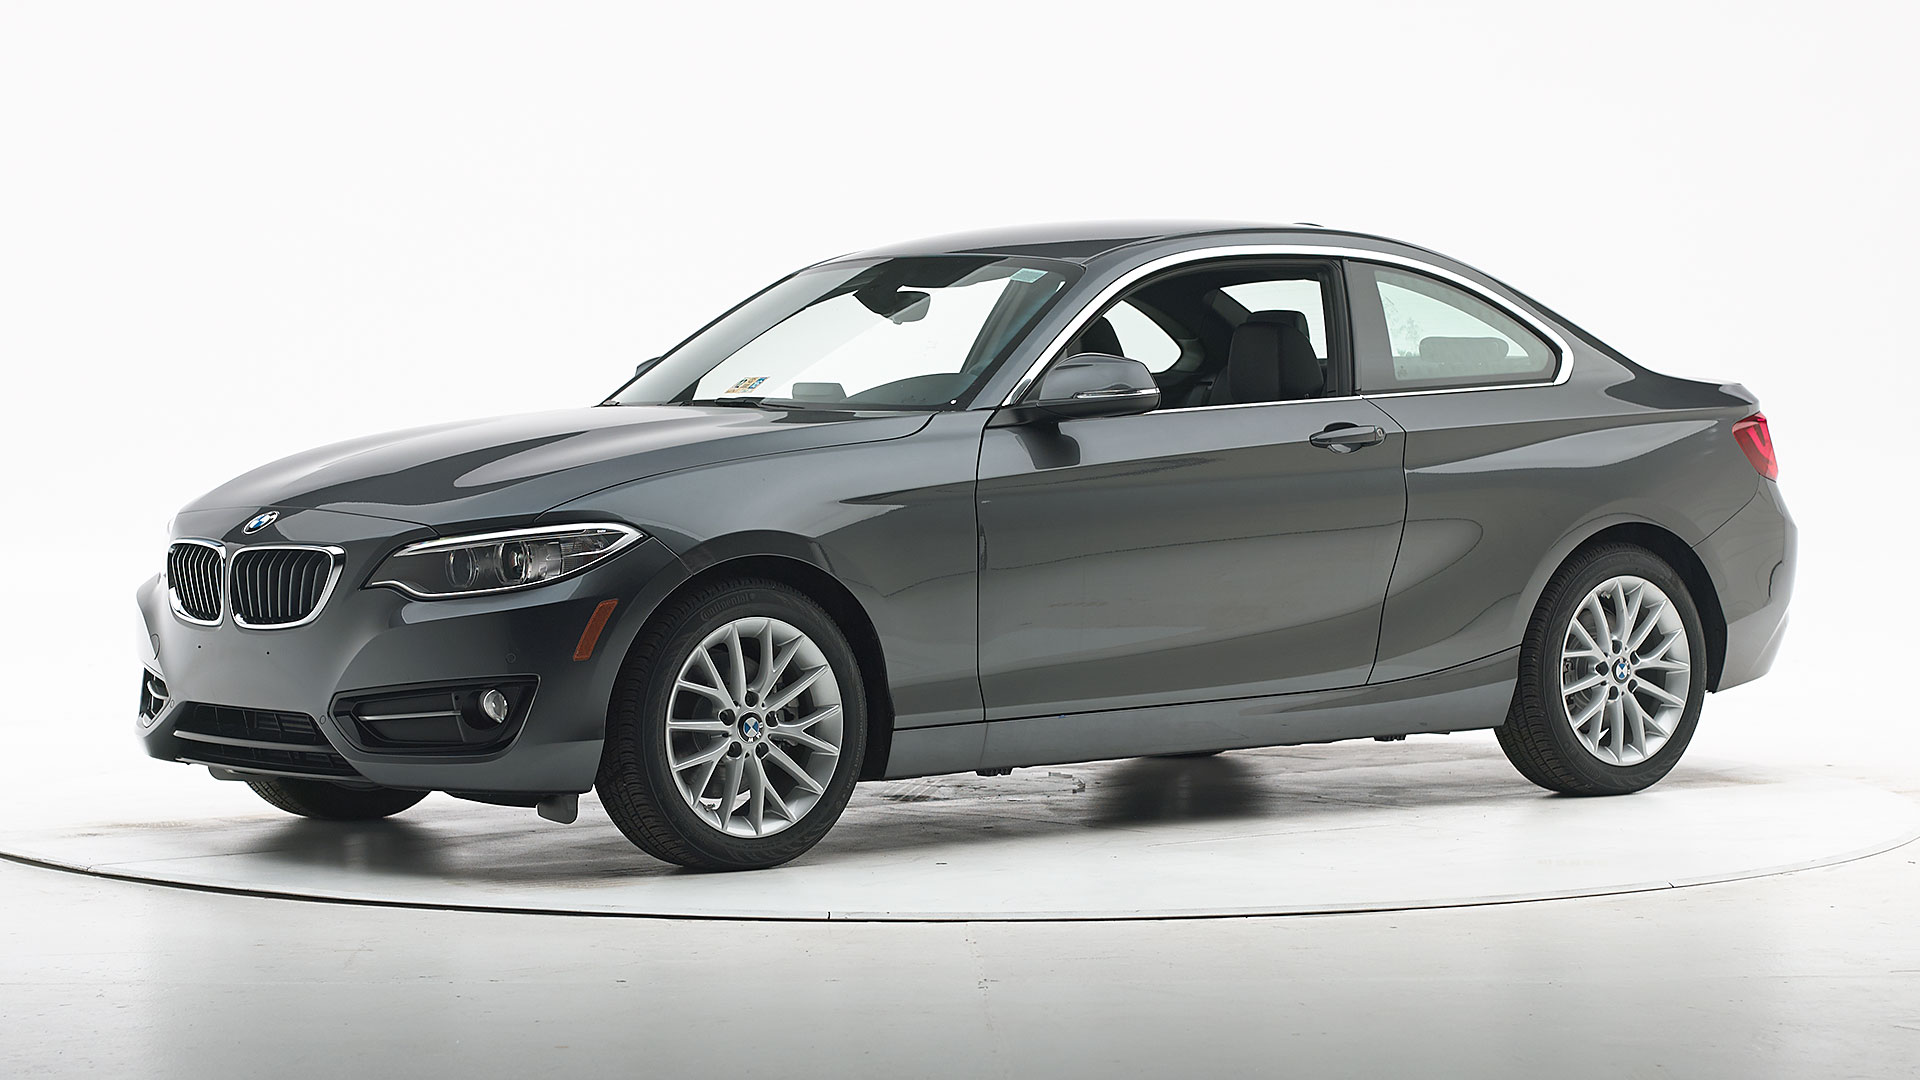 2016 BMW 2 series 2-door coupe